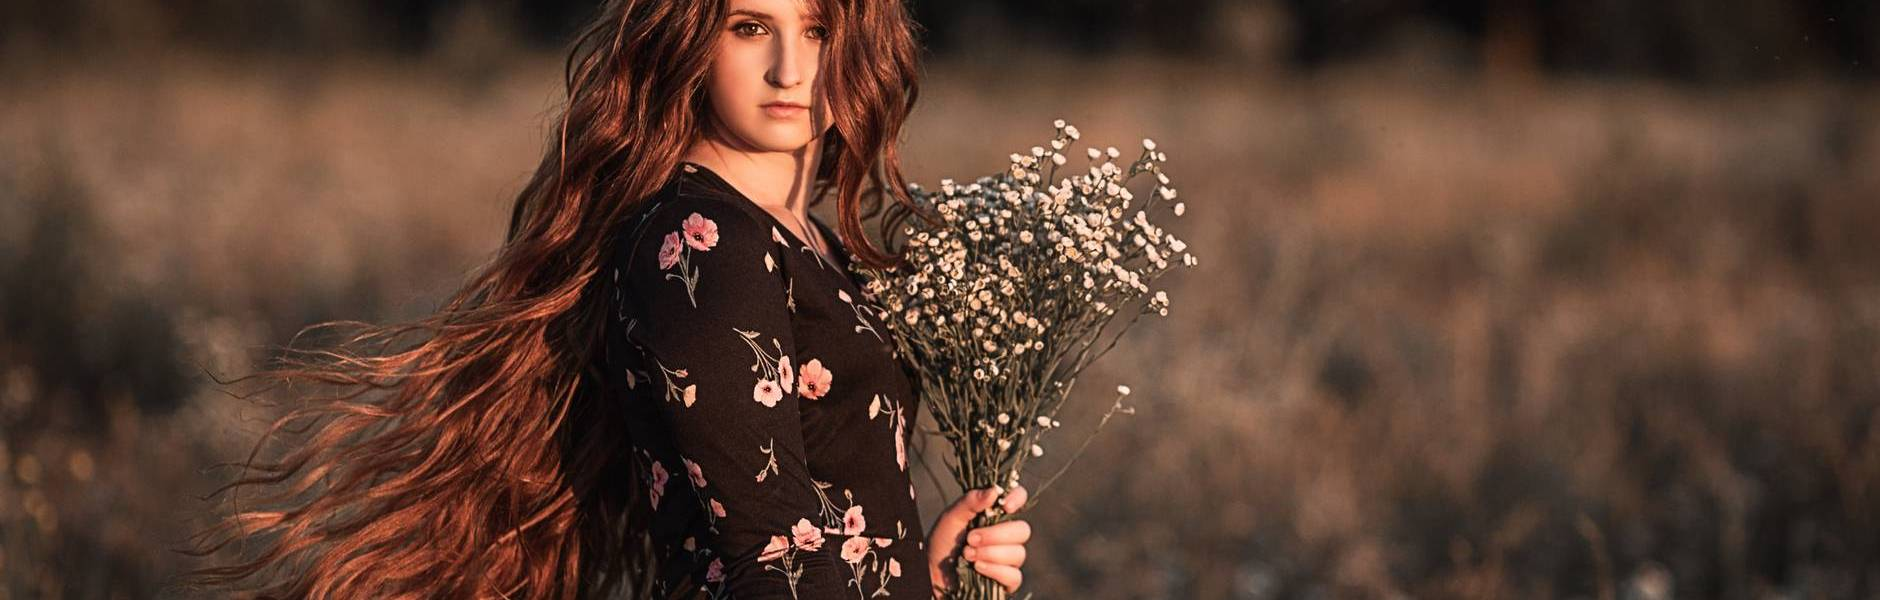 young woman in autumn flower field